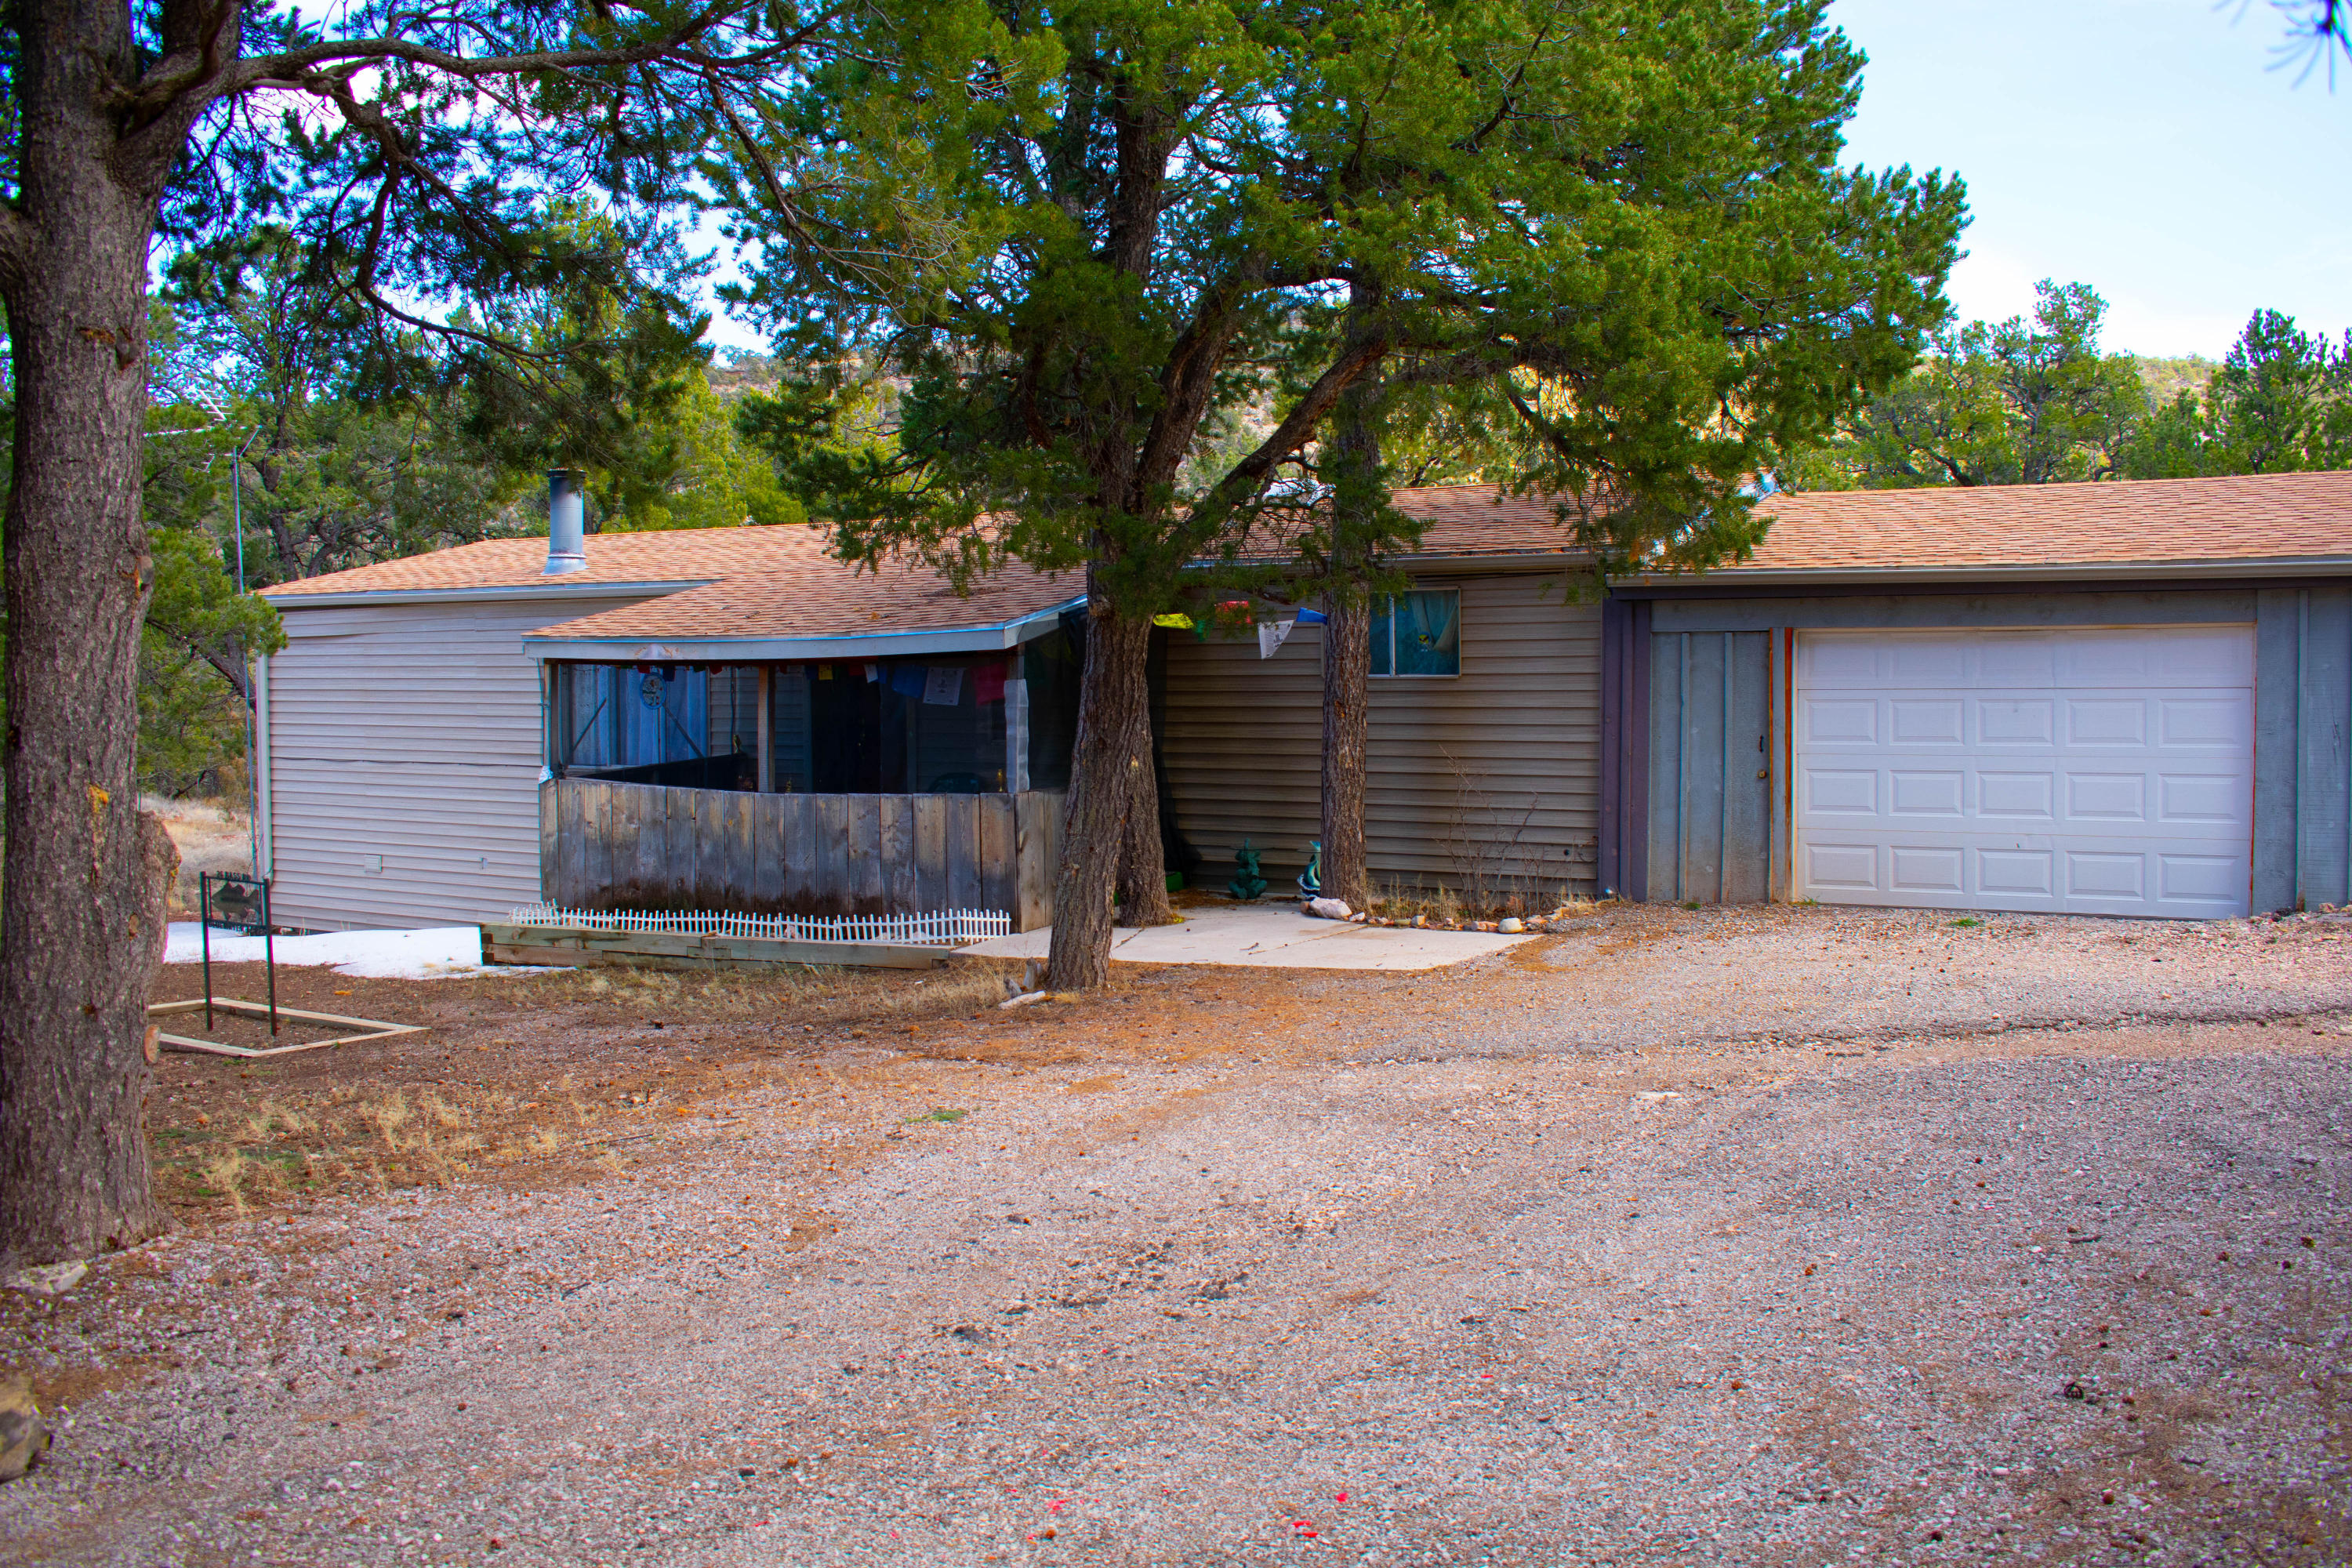 26 BASS Road, Thoreau, NM 87323 - Thoreau, NM real estate listing